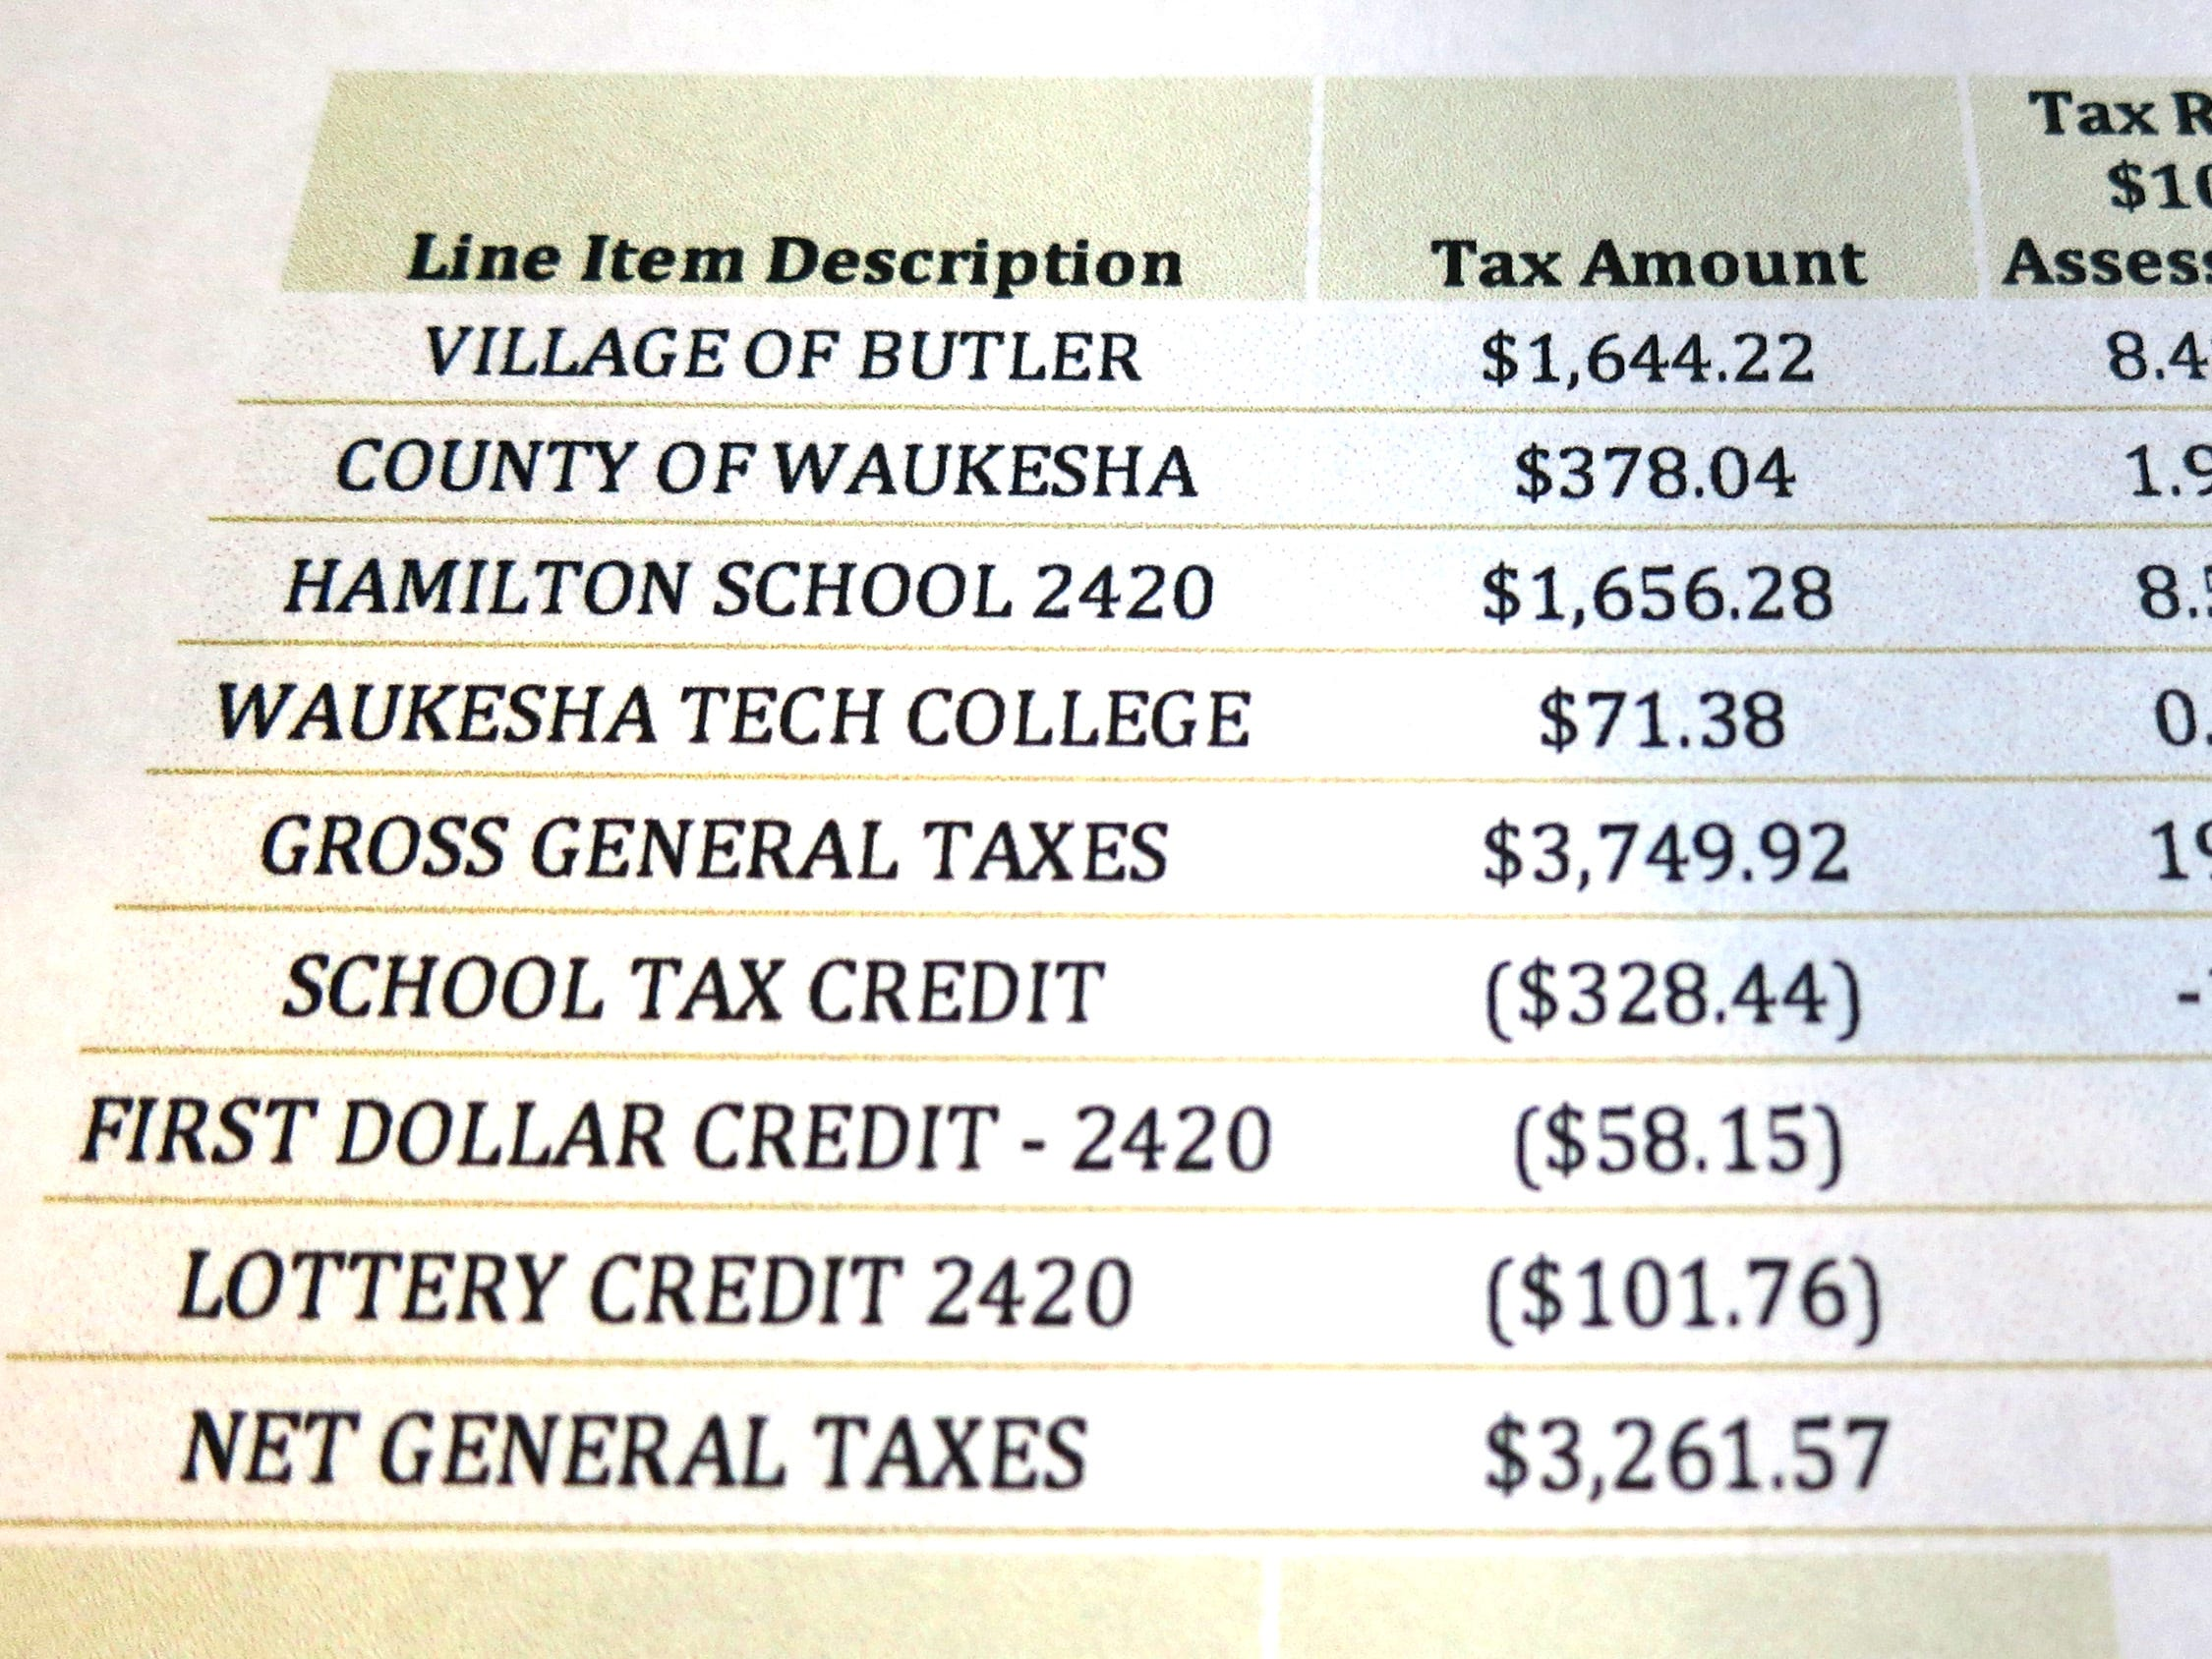 A village of Butler tax bill that includes garbage and recycling costs as part of the village's tax.